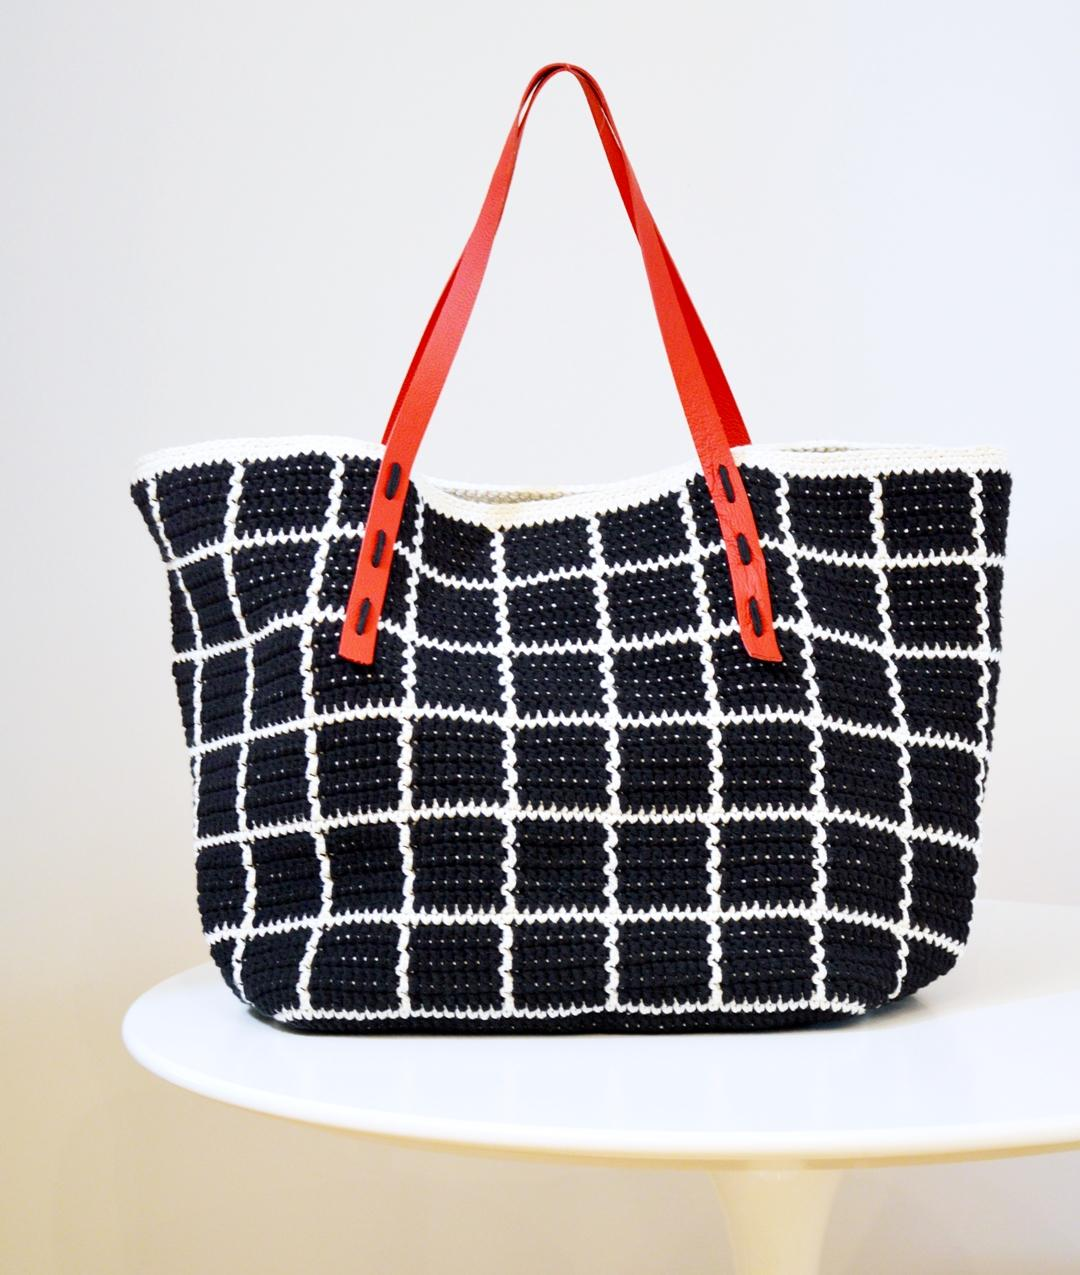 HANDBAGS & CLUTHES - Cotton - RUUDUKKO BAG - 1